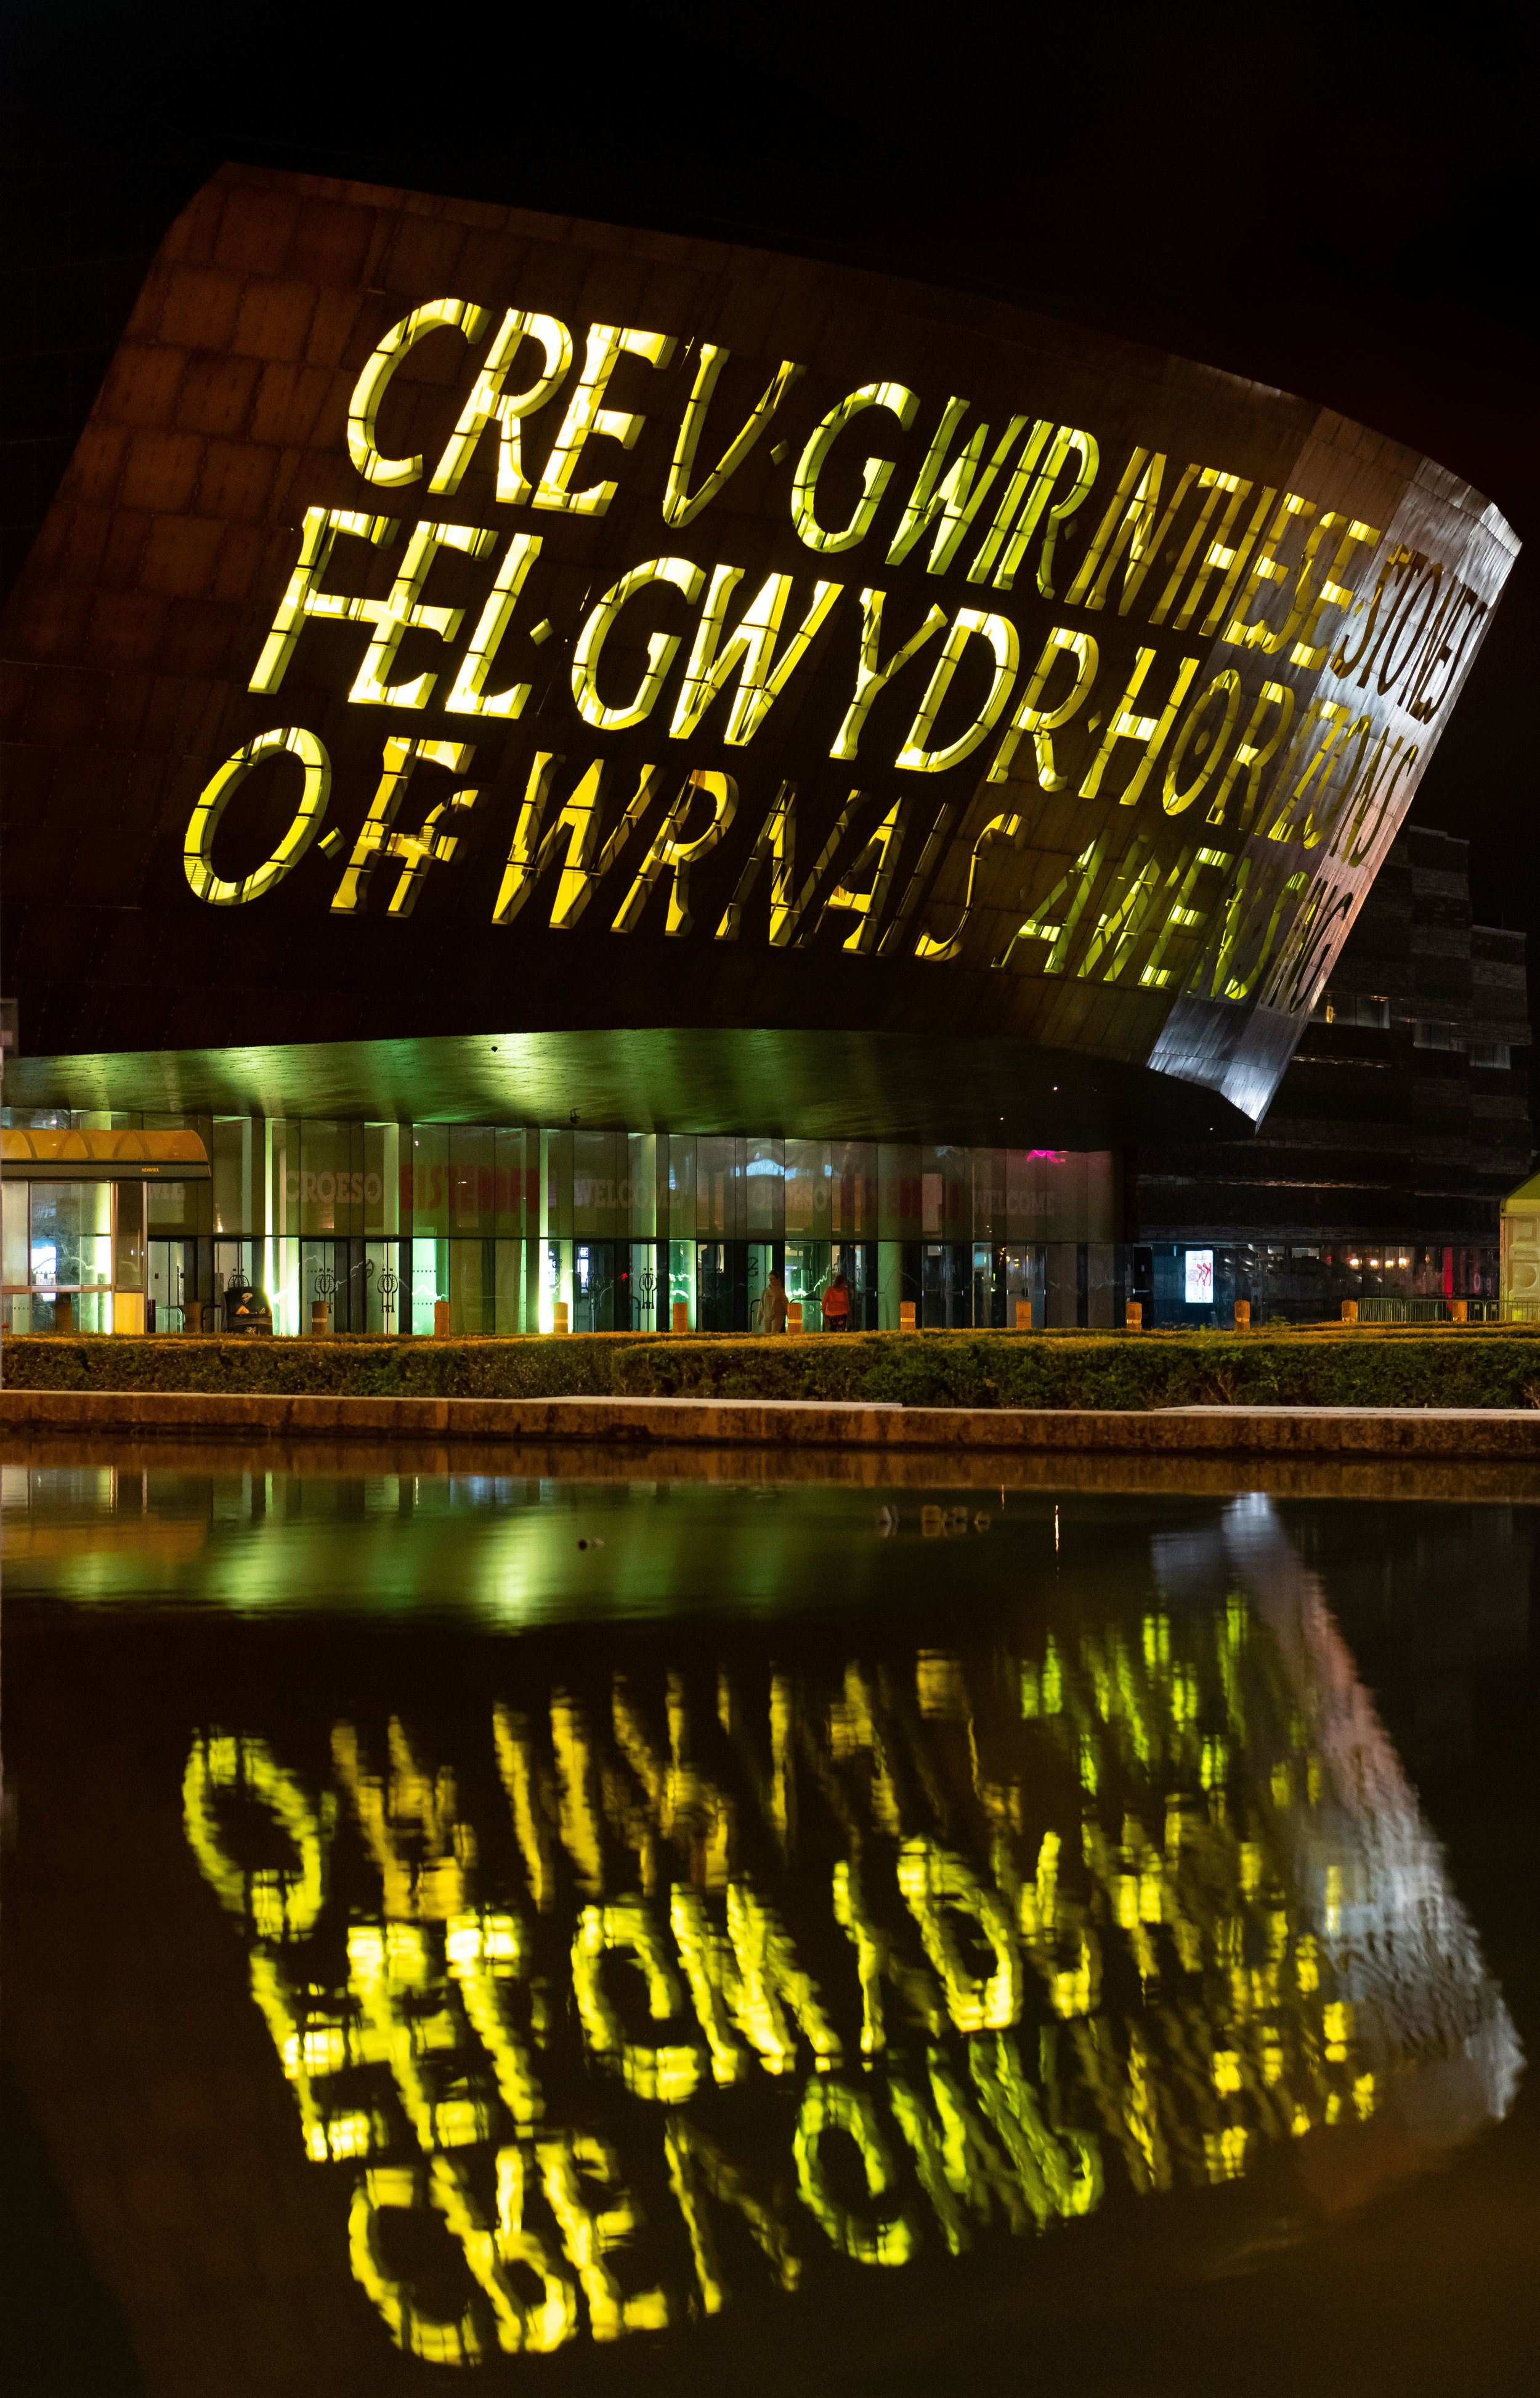 CARDIFF, WALES - JULY 29: The Wales Millennium Centre, Wales' national centre for performing arts, is seen illuminated in yellow light following cyclist Geraint Thomas' victory in the Tour De France on July 29, 2018 in Cardiff, Wales. Team Sky's Geraint Thomas, who was born in Cardiff, is the first Welshman to have won the Tour de France. The yellow illumination represents the colour of the yellow jersey worn by the race leader.